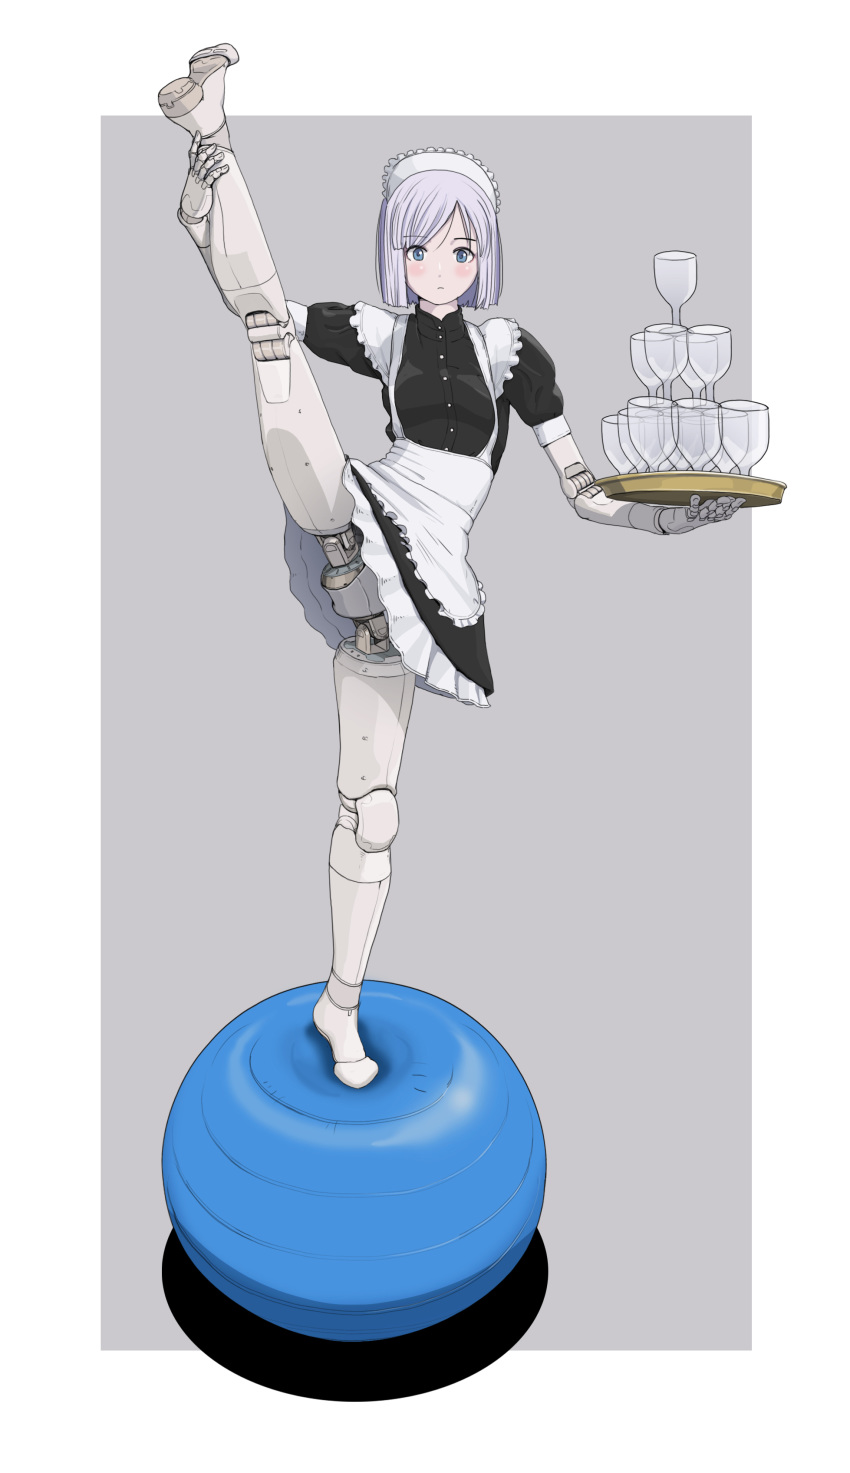 1girl absurdres android apron balancing balancing_ball bangs colorized cup drinking_glass expressionless flat_chest flexible greyscale highres joints maid maid_apron maid_headdress mechanical_parts monochrome no_panties no_pussy original robot_joints science_fiction short_hair solo split standing standing_on_one_leg standing_split sukabu swept_bangs tray upskirt wine_glass